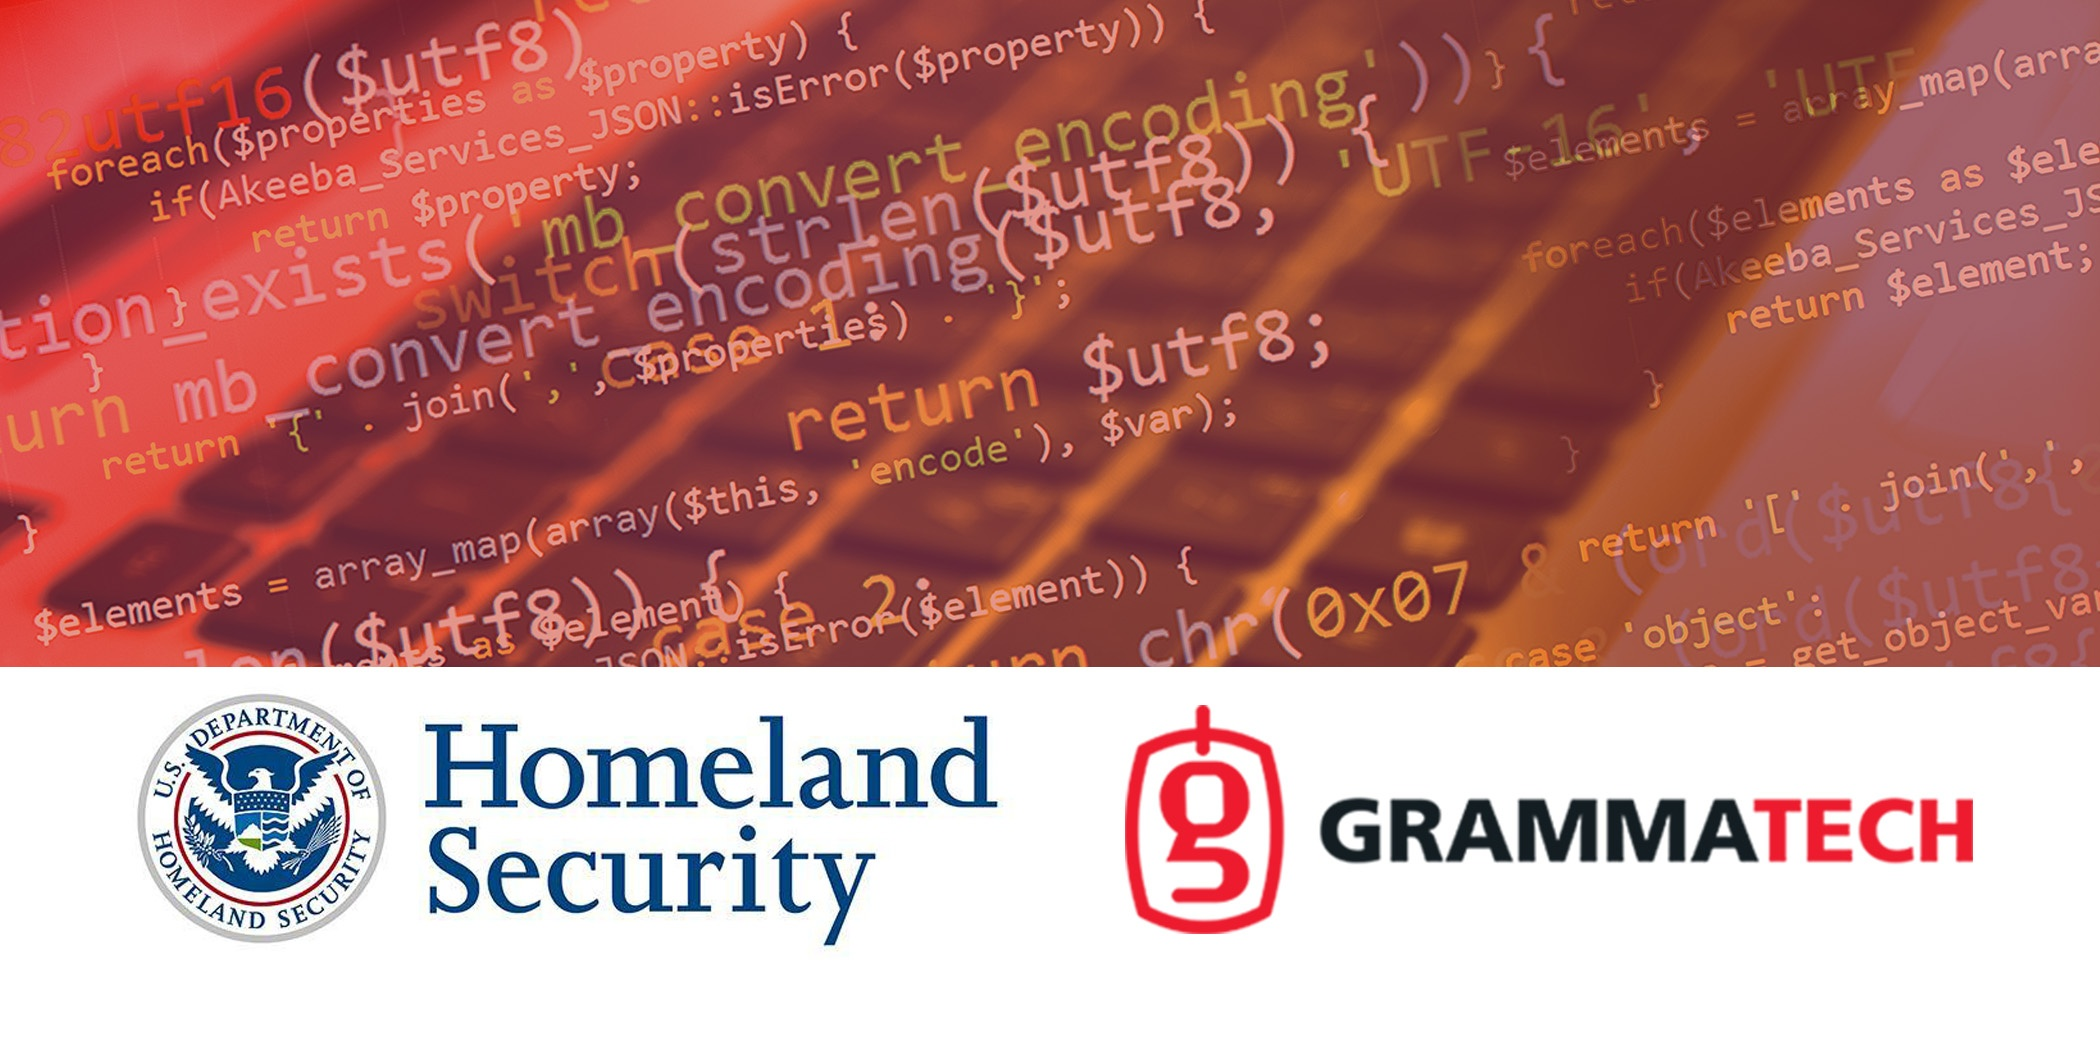 DHS Awards GrammaTech $3.5M to Modernize Open-Source Software Analysis Tools